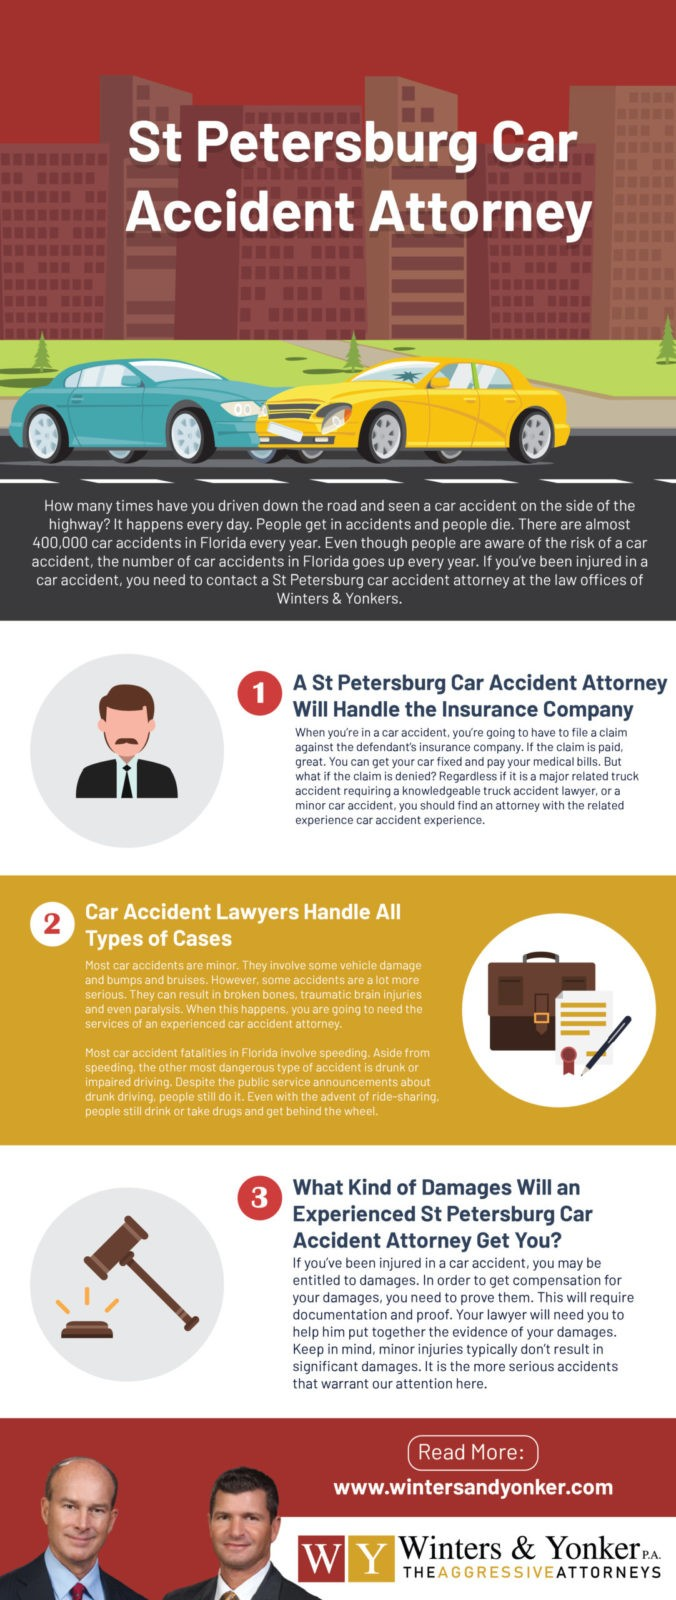 St Petersburg Car Accident Lawyer